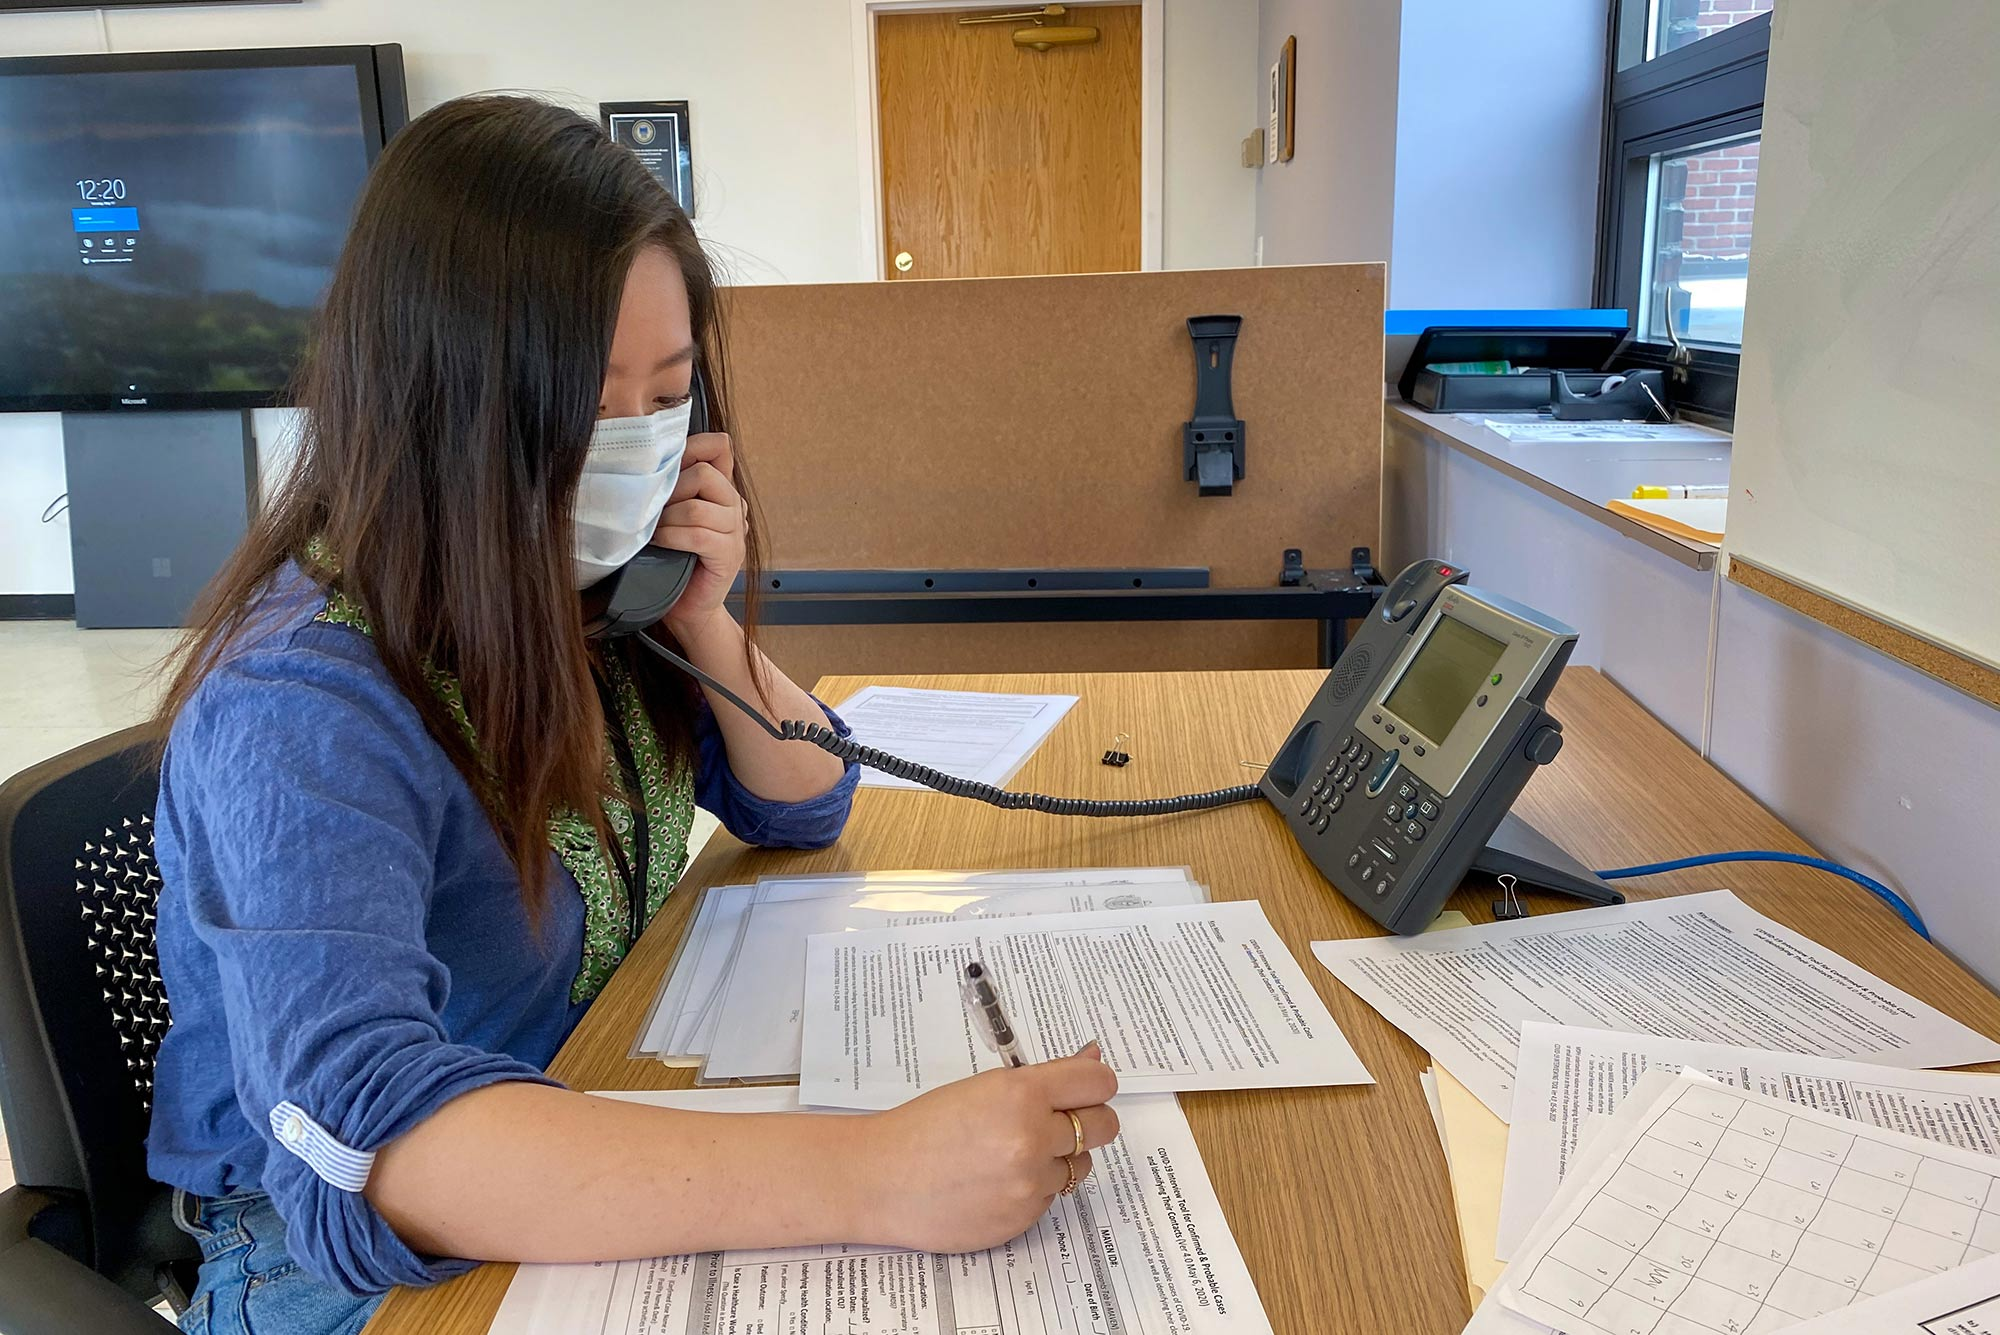 Image of Rinka Murakami (SAR'20, MPH'21) volunteering as a contact tracer for the city of Boston. Murakami wears a mask, writes on some forms, while talking on the phone.